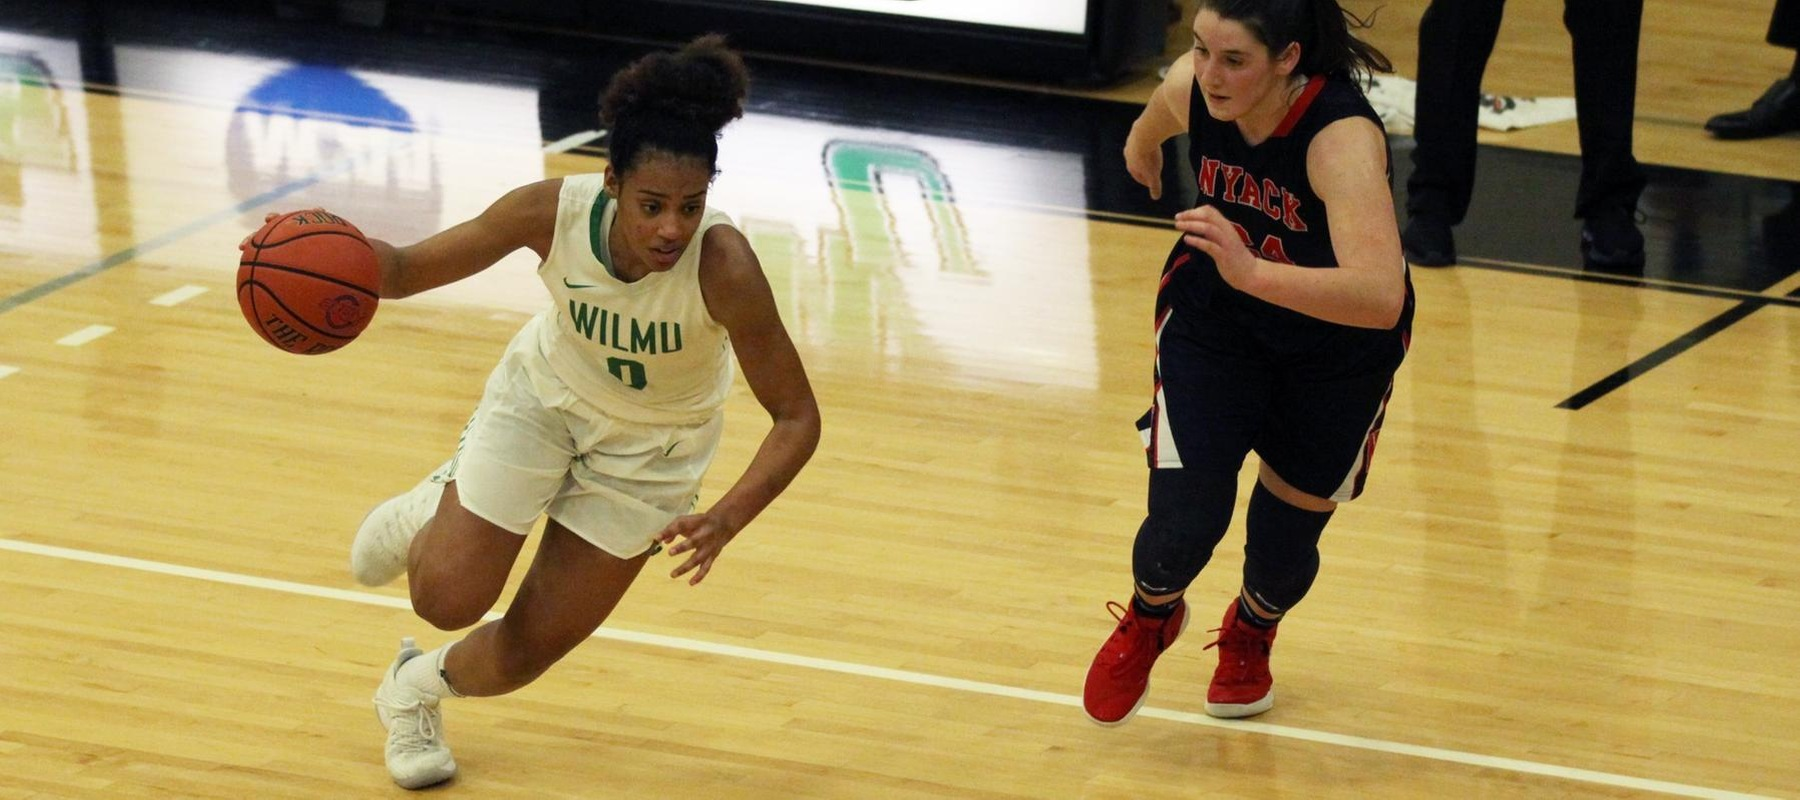 Copyright 2019; Wilmington University. All rights reserved. Photo of Jadyn Whitsitt who scored 18 points against Nyack. Photo by Dan Lauletta. January 5, 2019 vs. Nyack College.